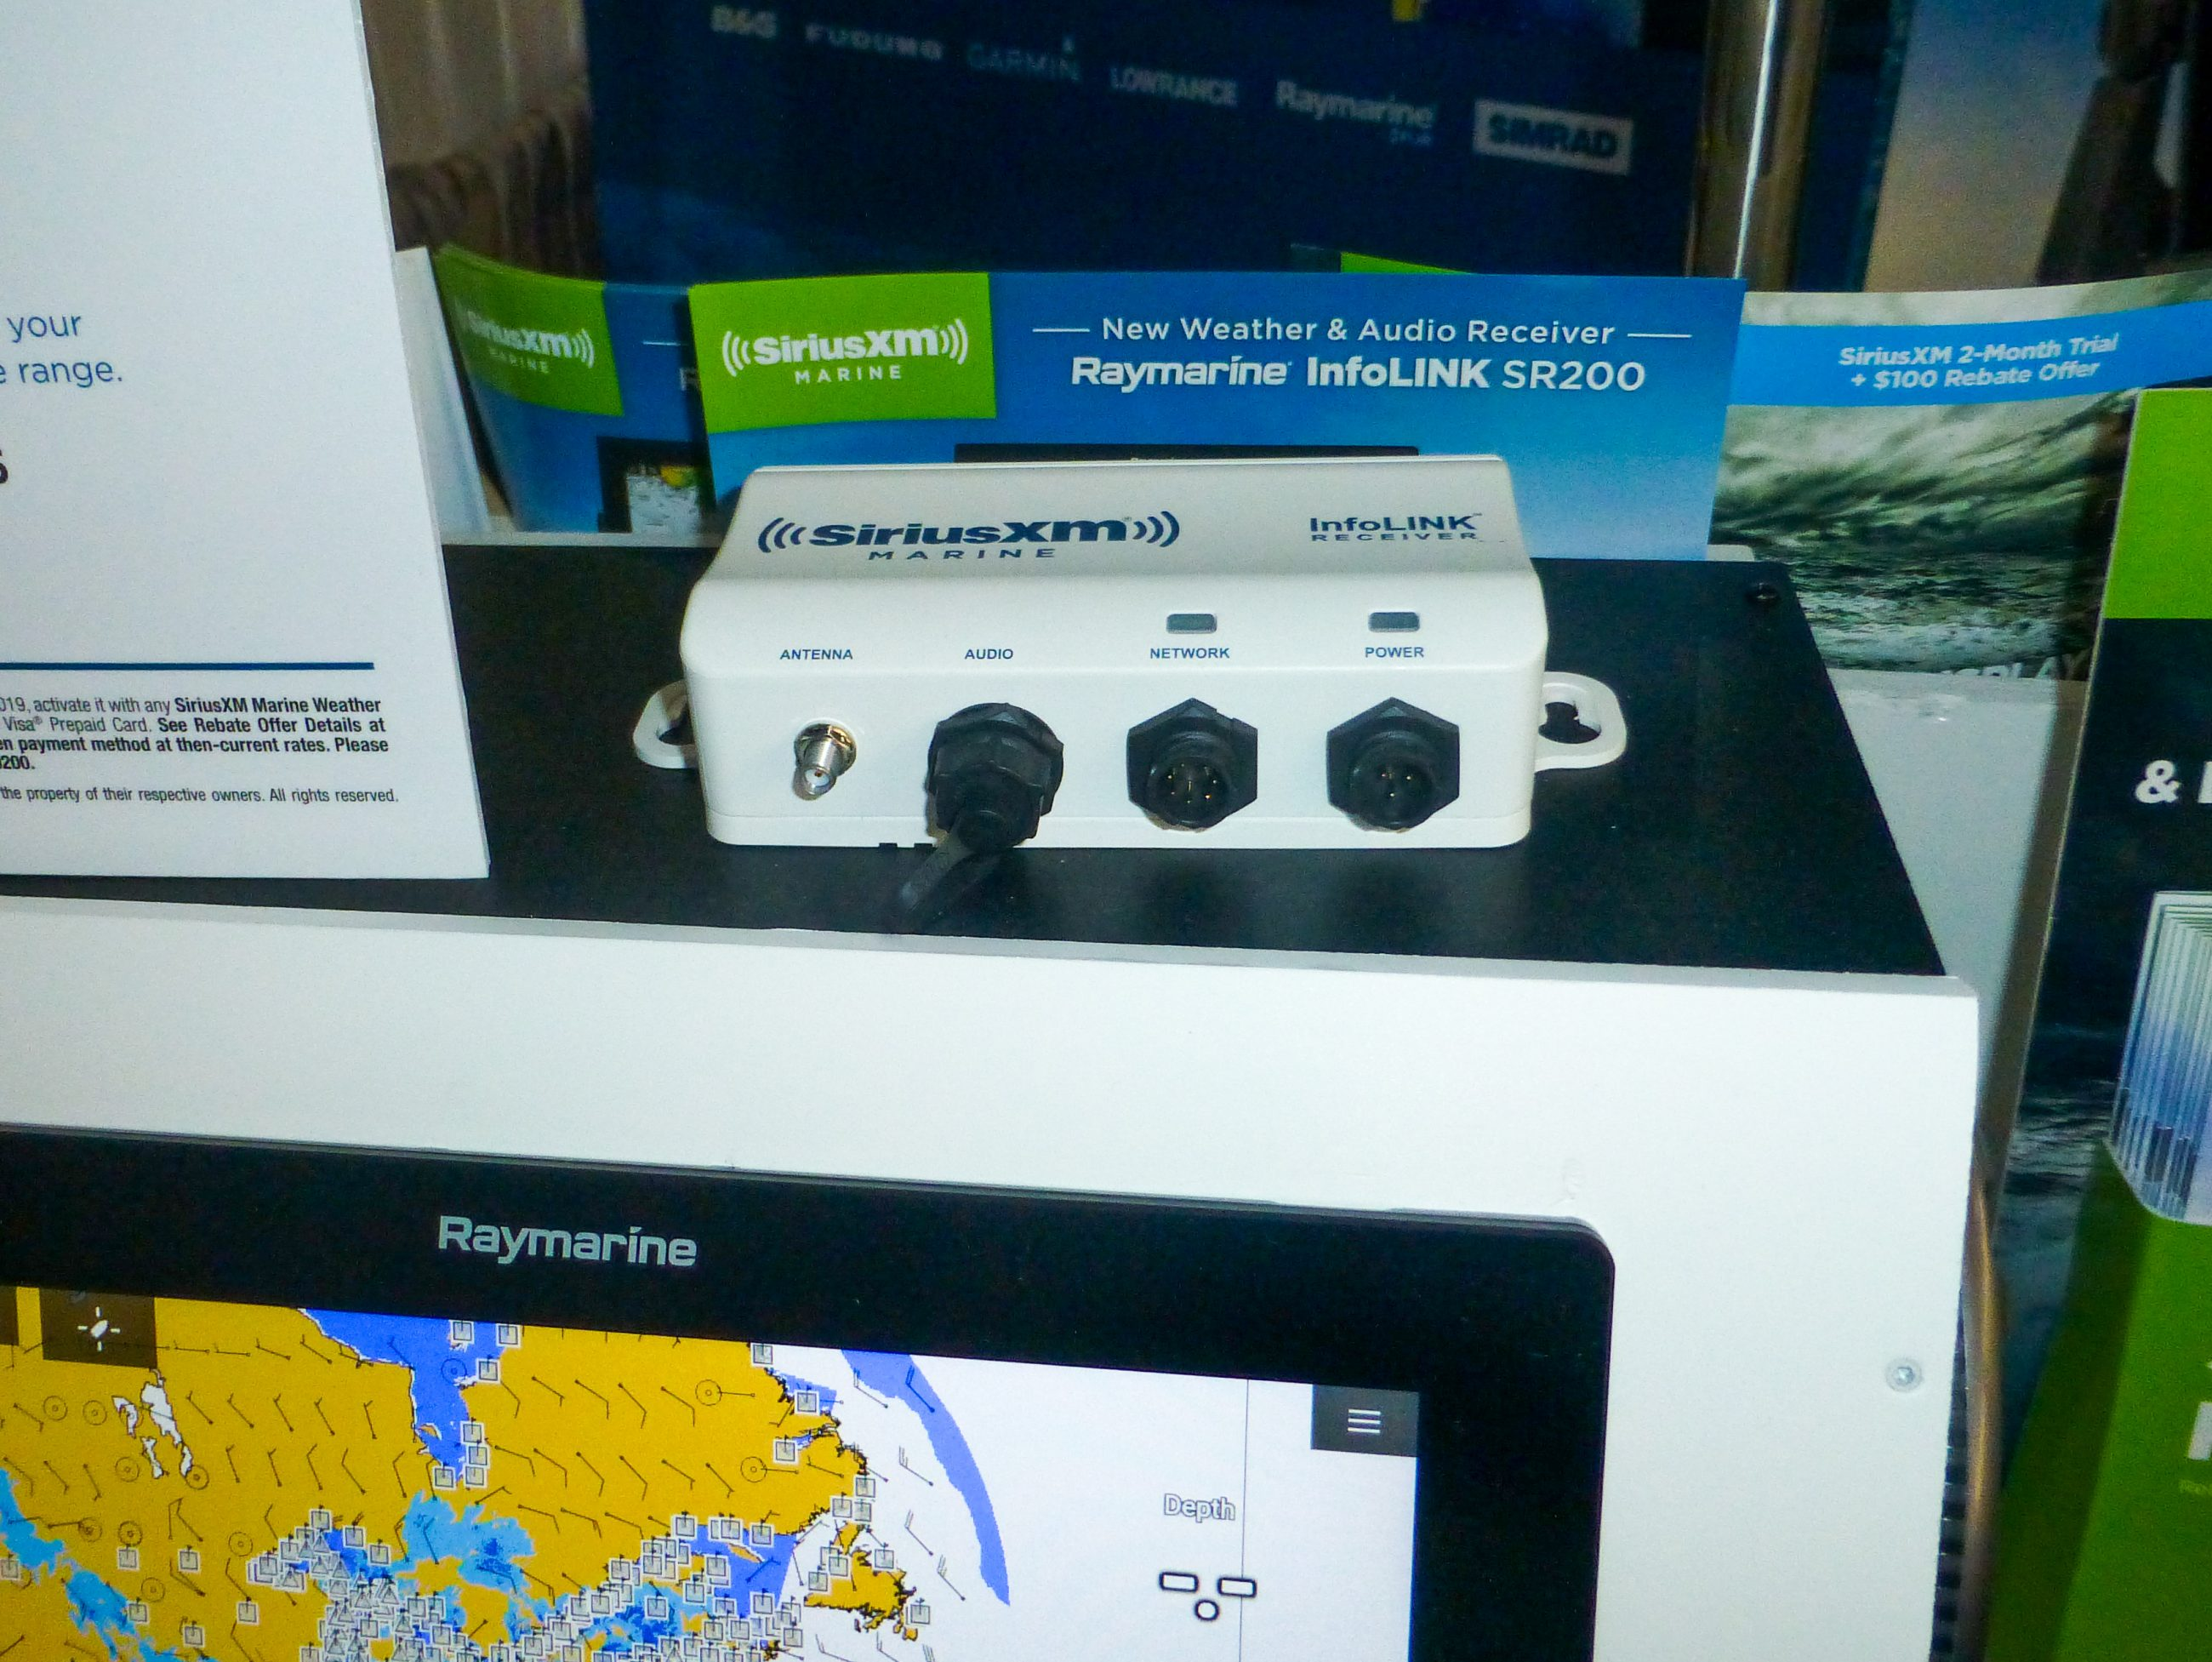 SiriusXM InfoLink, new features and lower priced SiriusXM weather